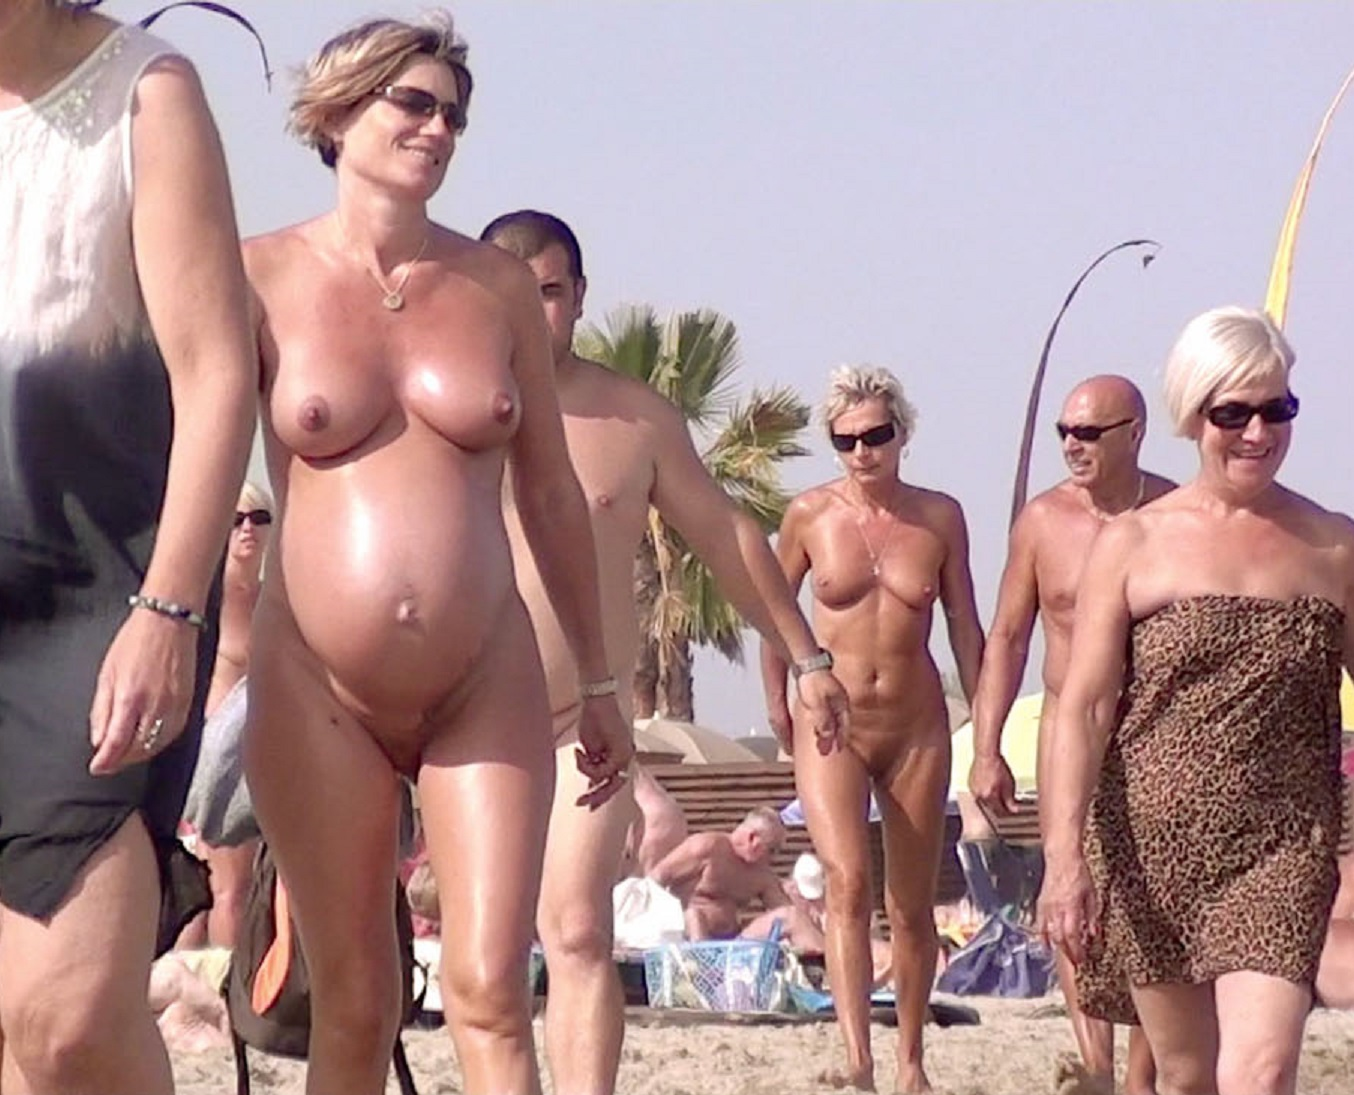 Teens Naked Photo In South Africa | Amazing Photo